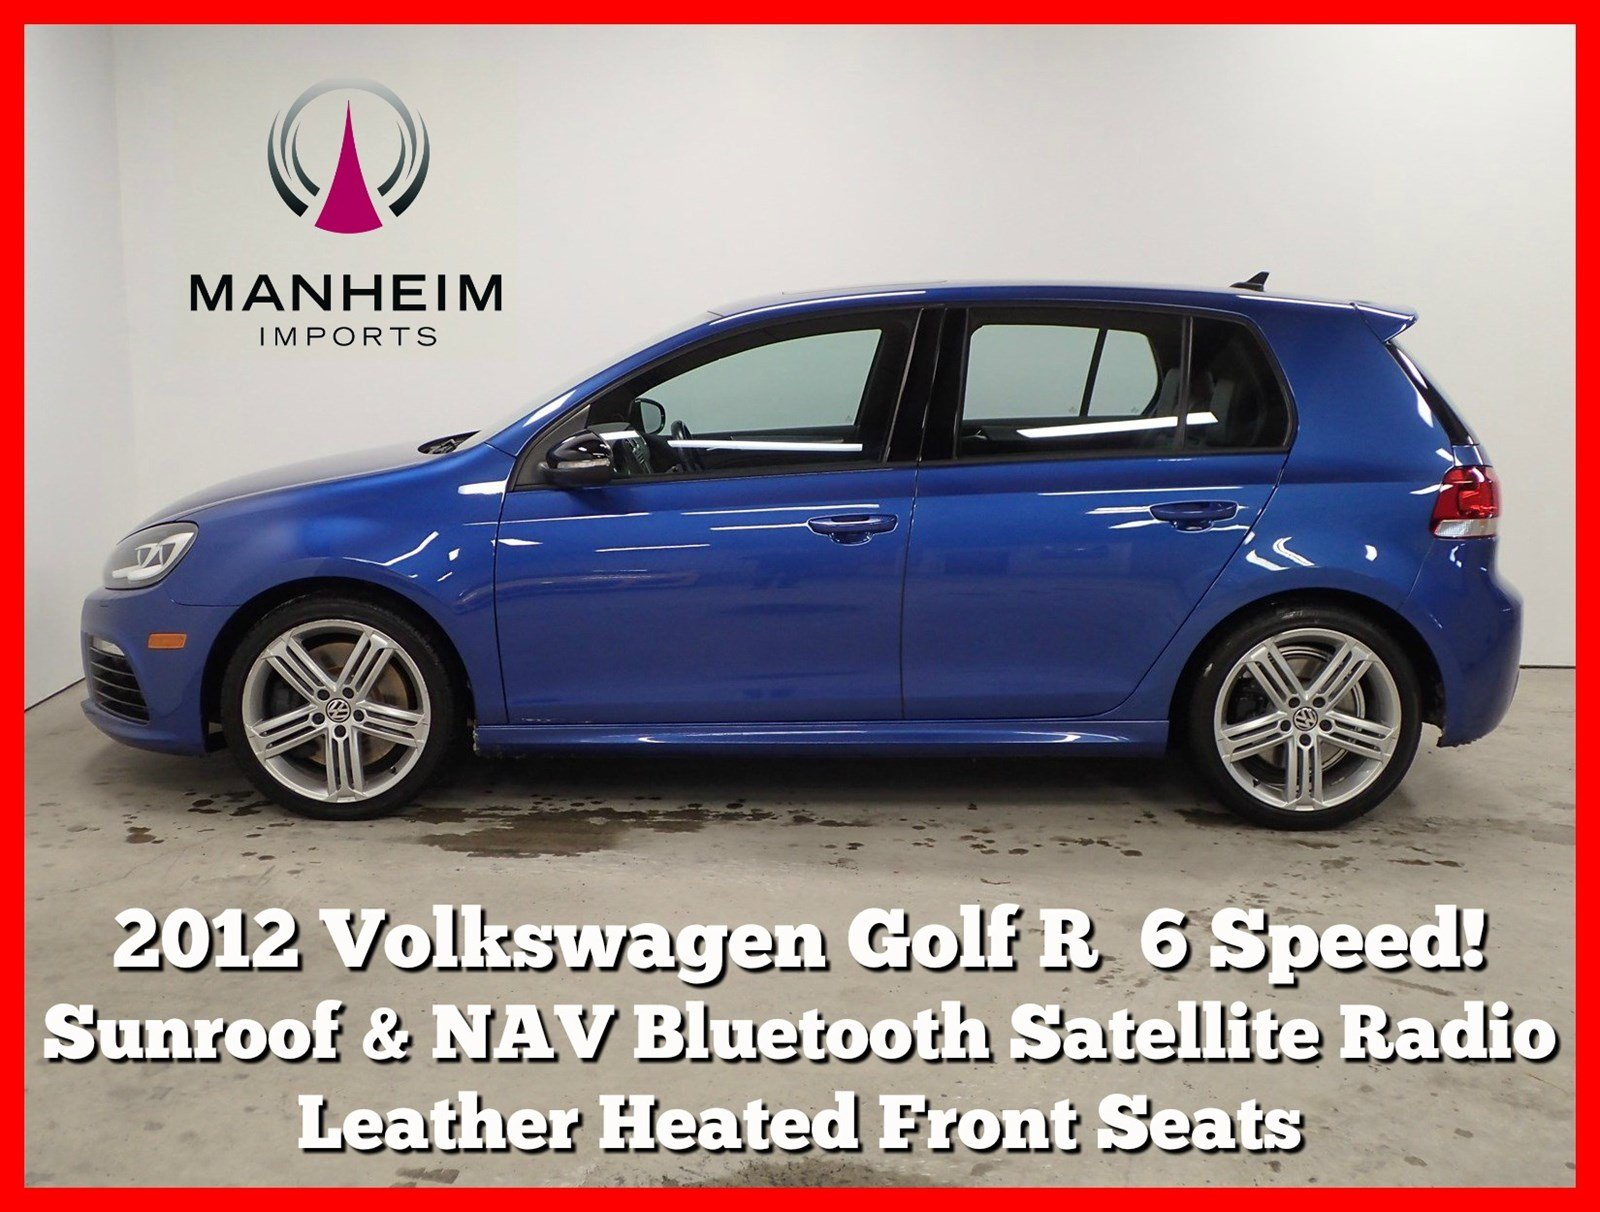 Pre-Owned 2012 Volkswagen Golf R w/Sunroof & NAV 6 Speed